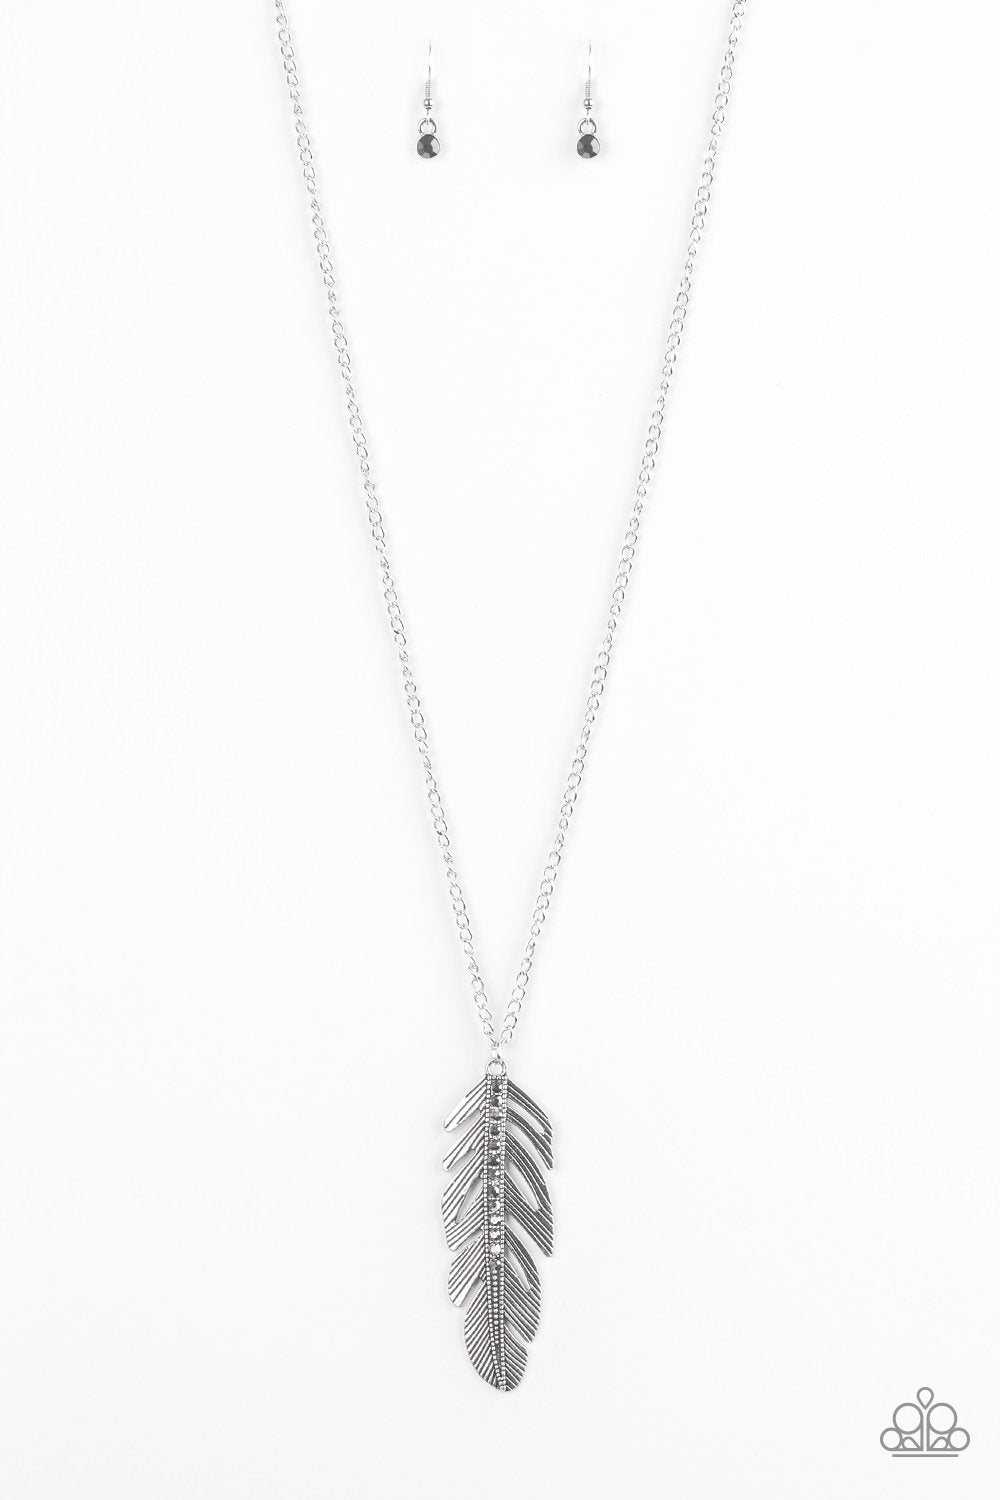 Paparazzi Necklace ~ Sky Quest - Silver